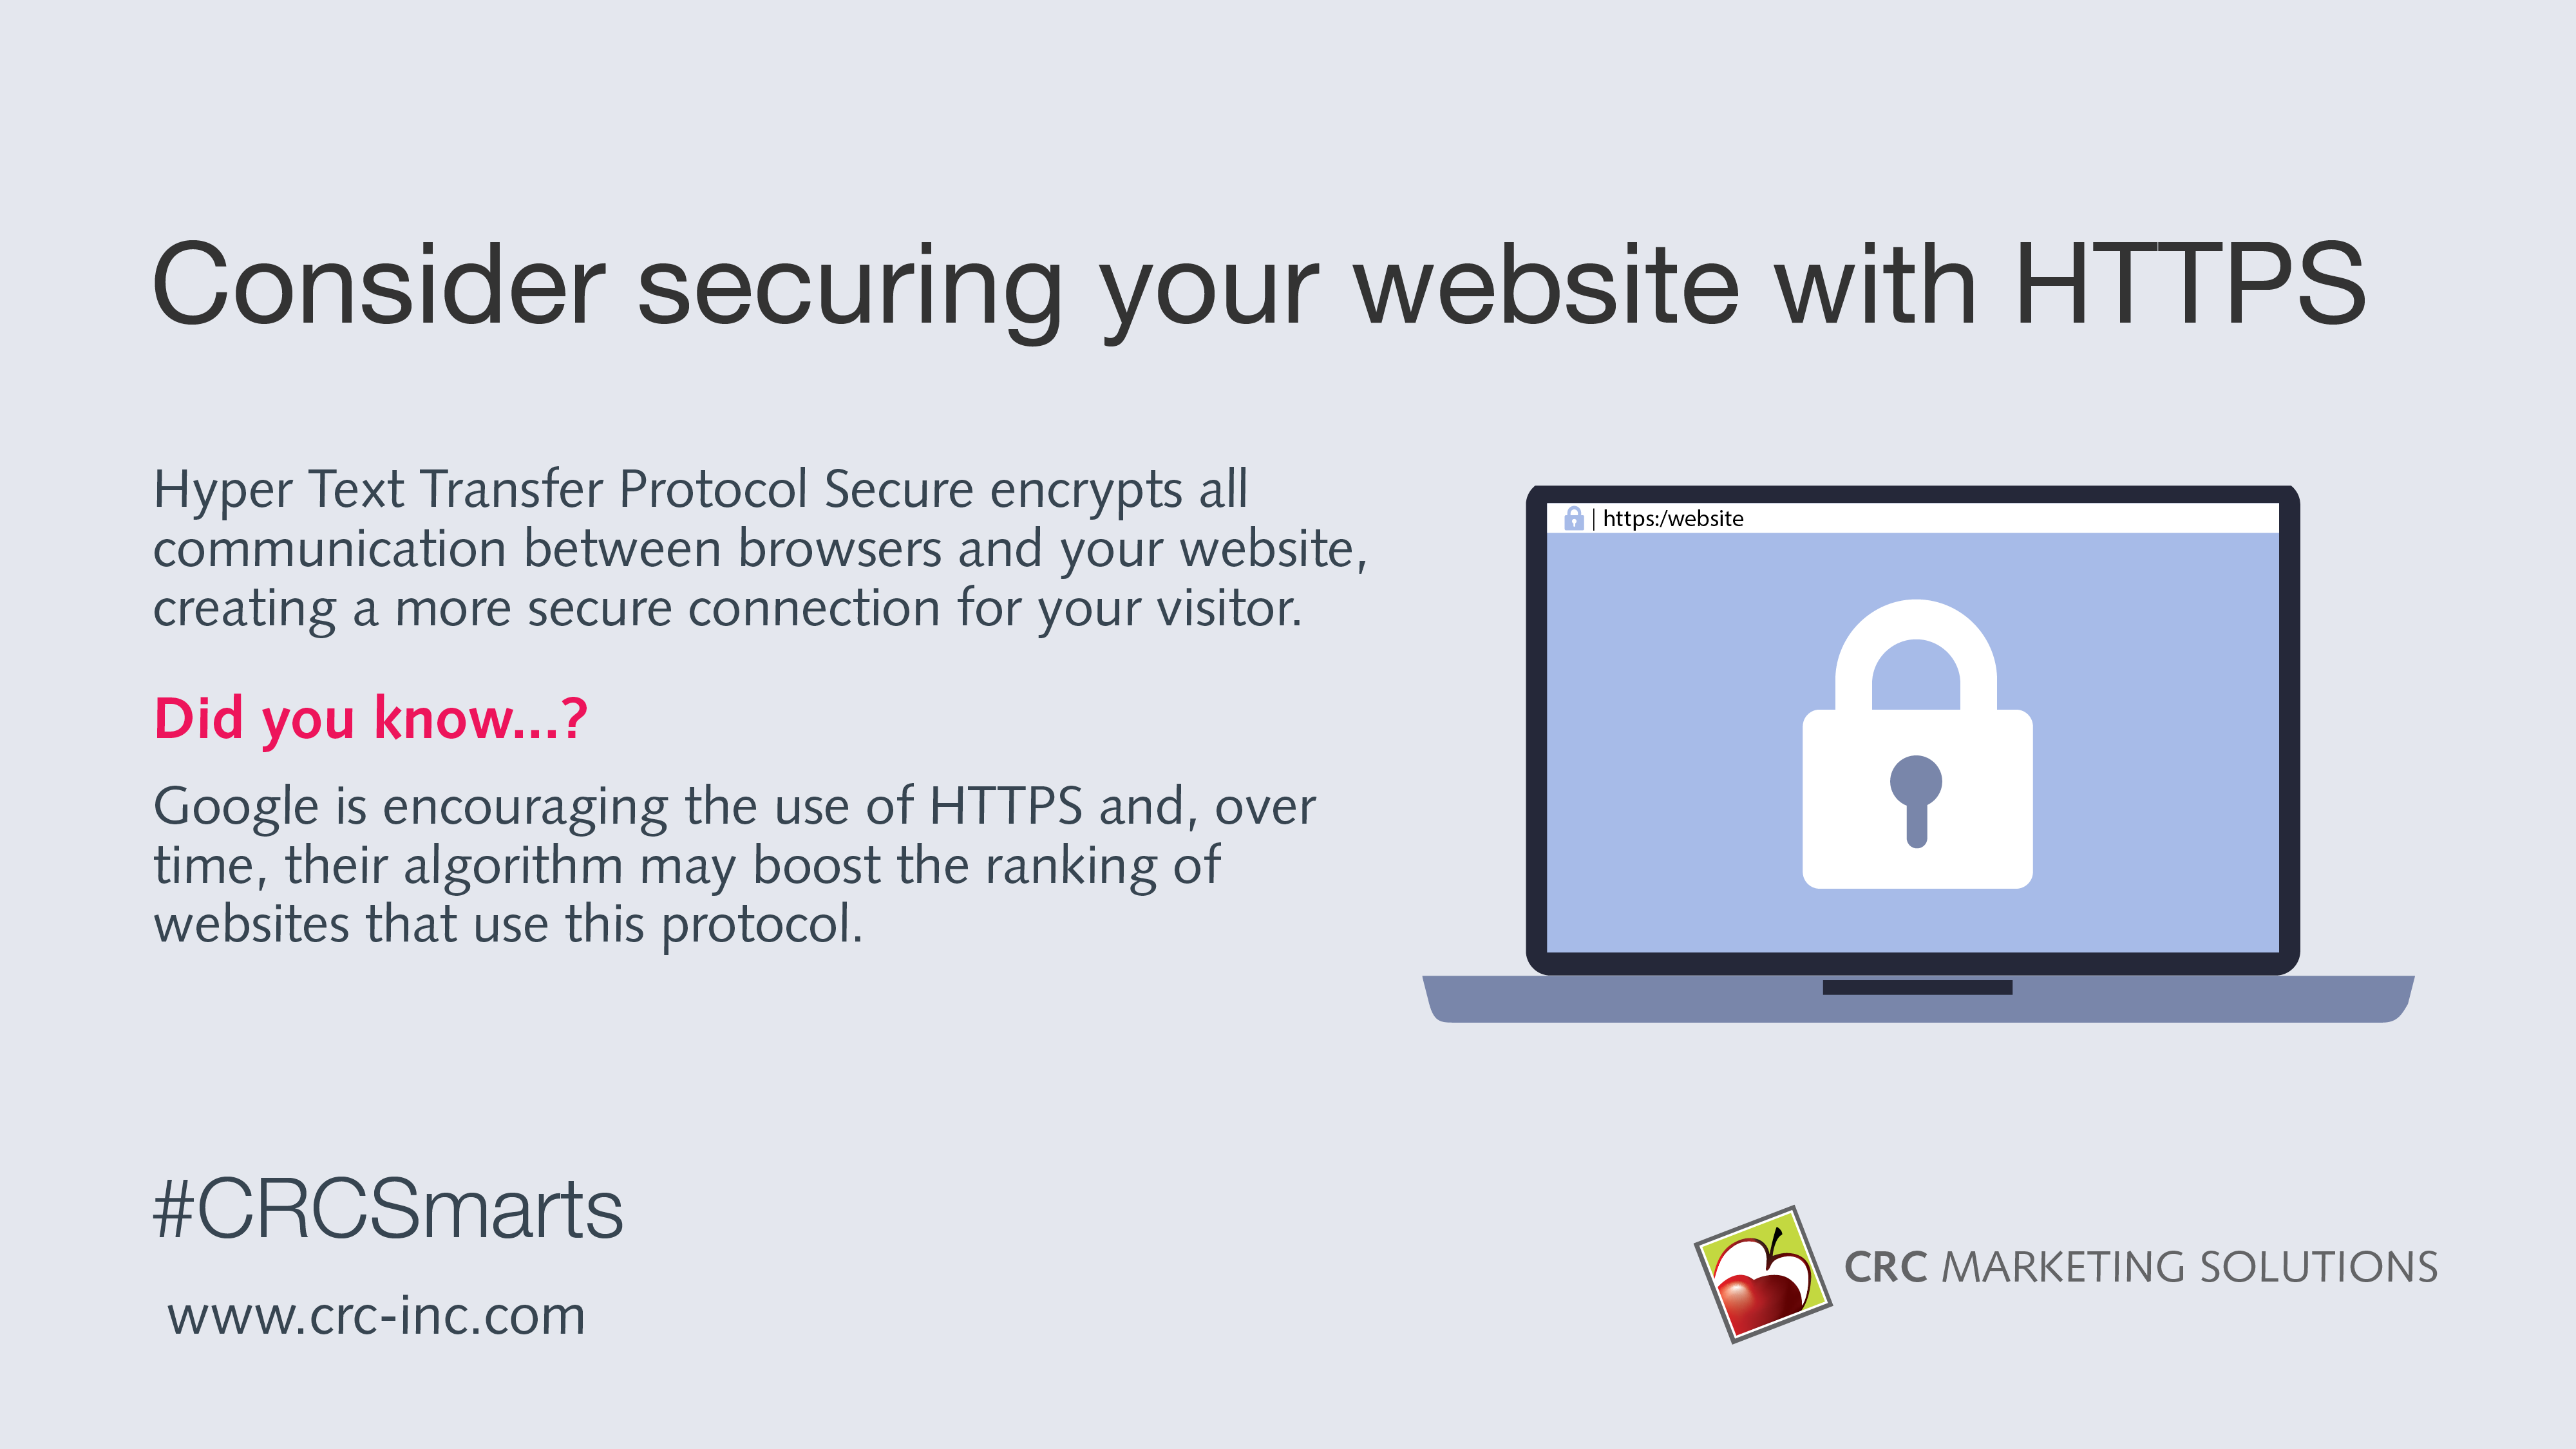 Consider securing your website with HTTPS